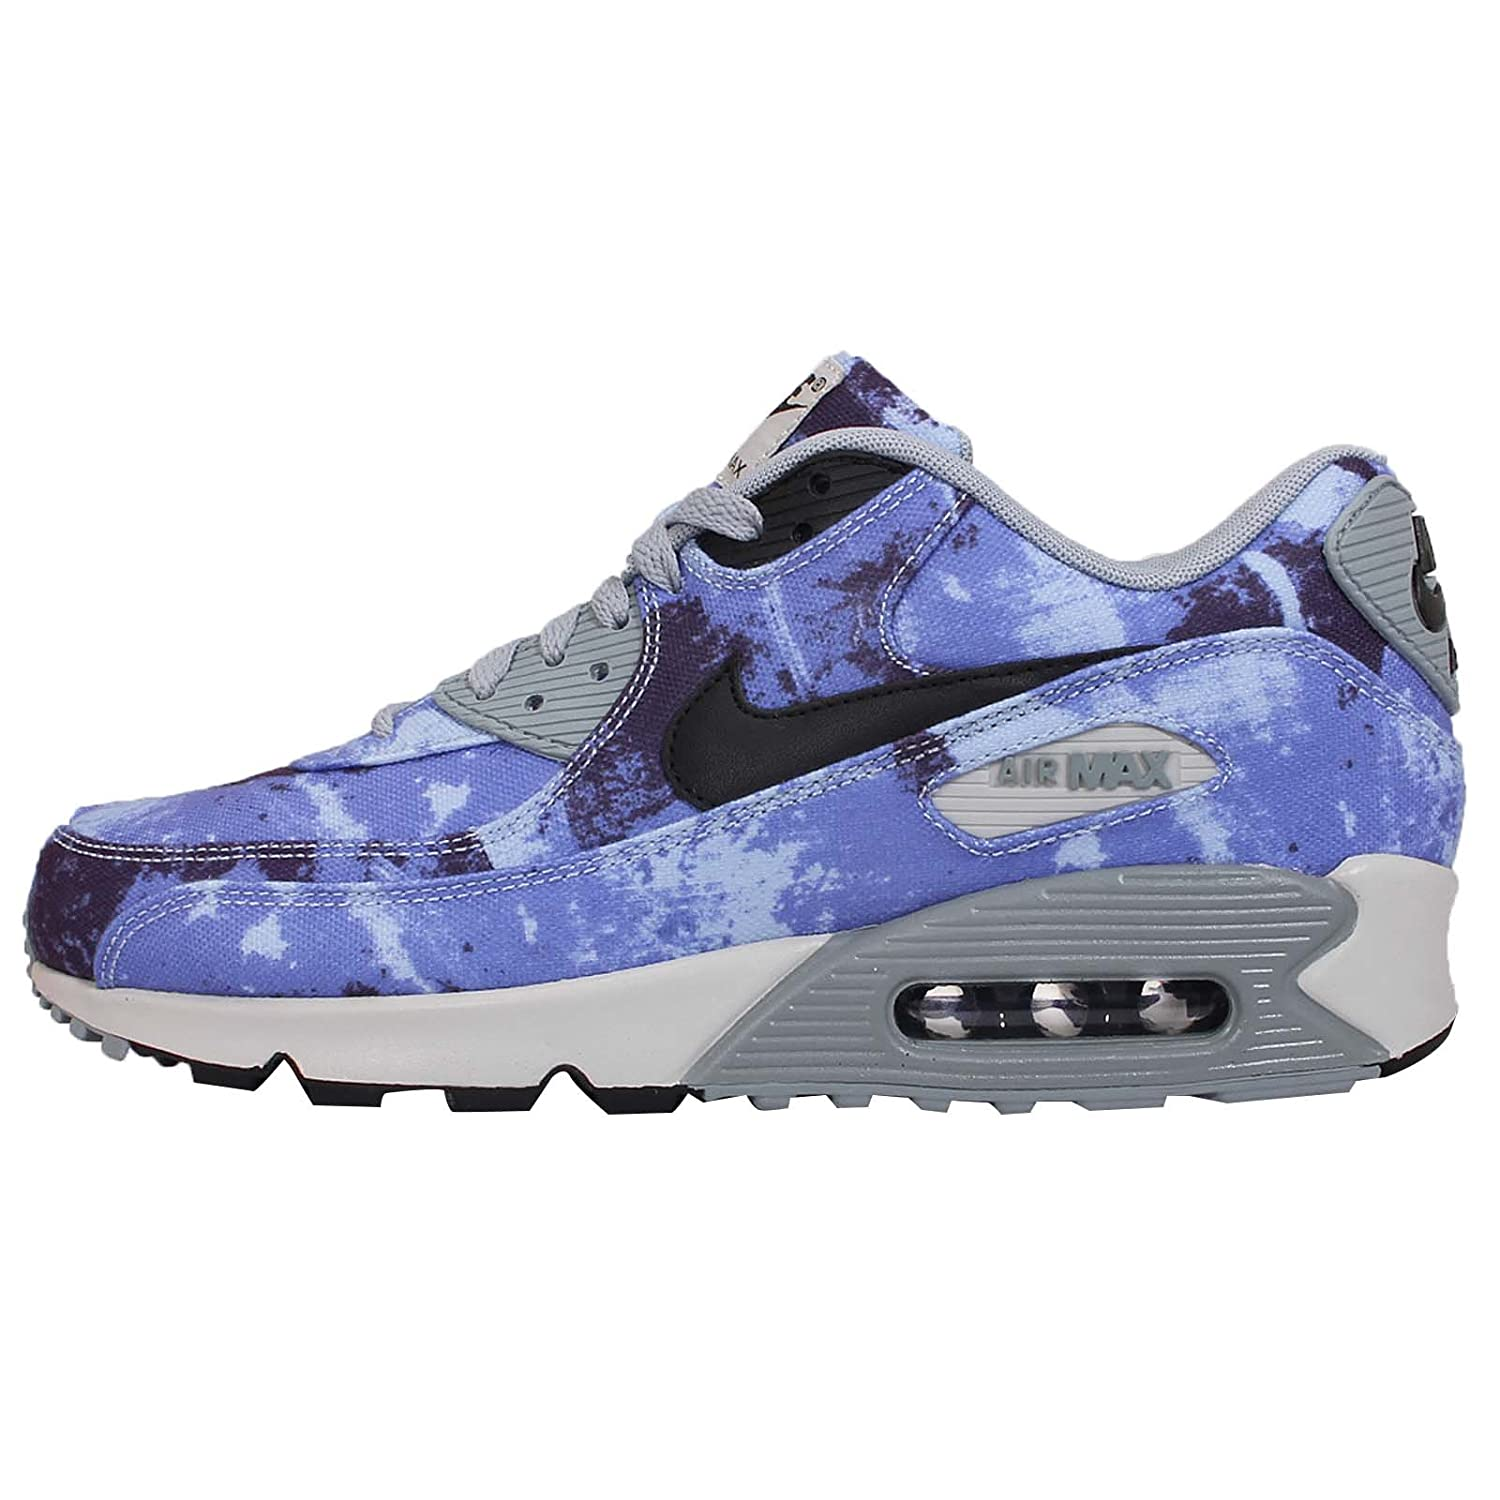 nike air max 90 SD mens running trainers 724763 sneakers shoes